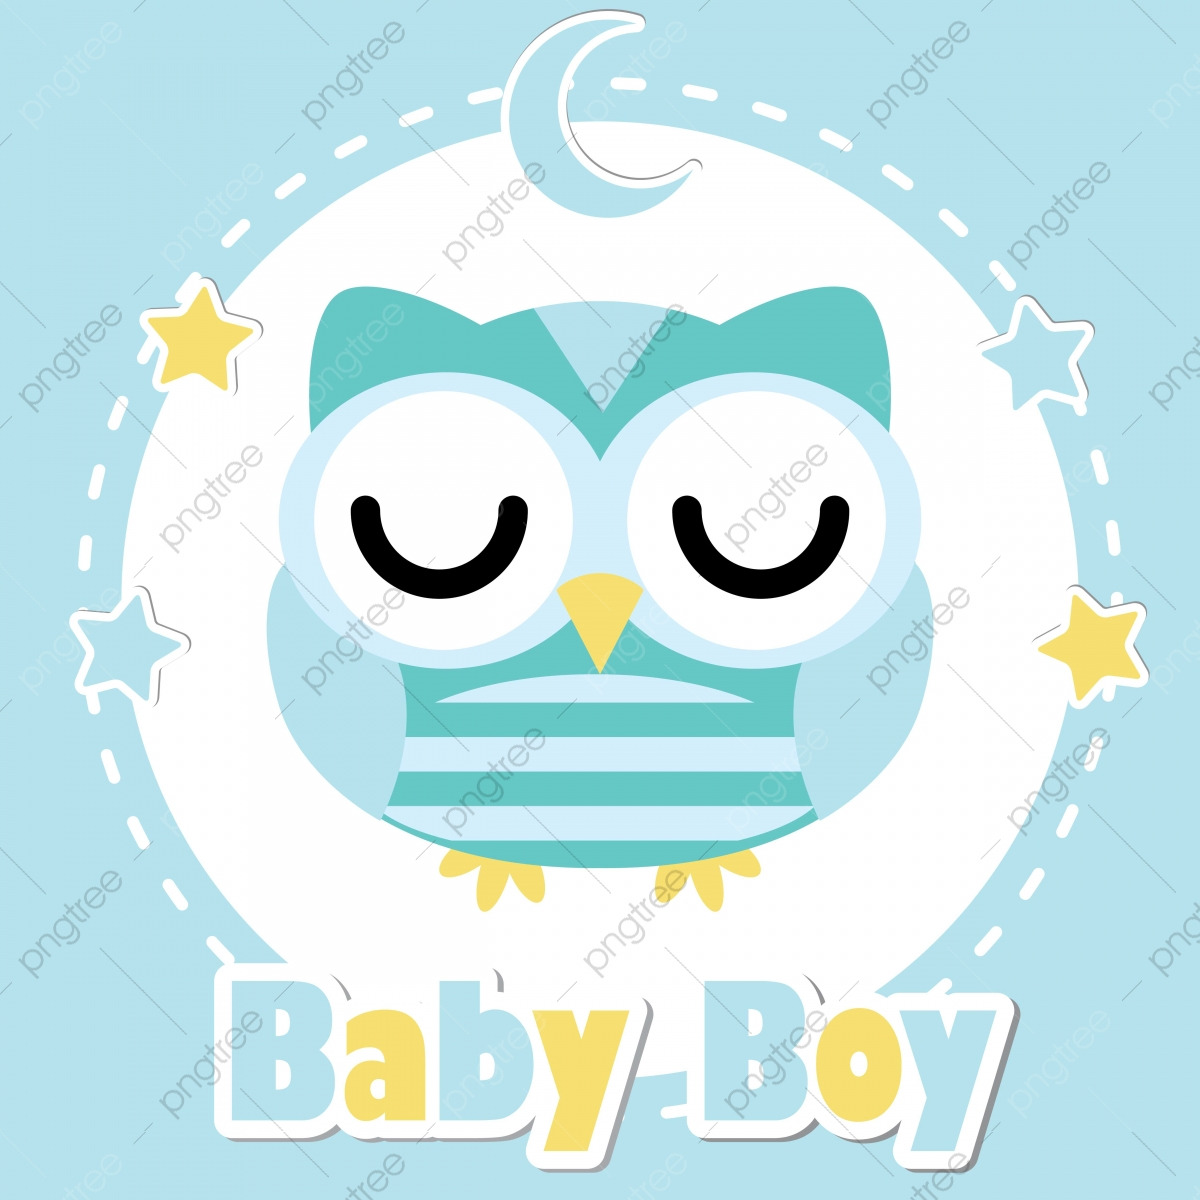 Cute Owl Boy On Blue Moon And Frame Cartoon Illustration For Baby Shower Invitation Card Design Postcard And Wallpaper Adorable Card Png And Vector With Transparent Background For Free Download